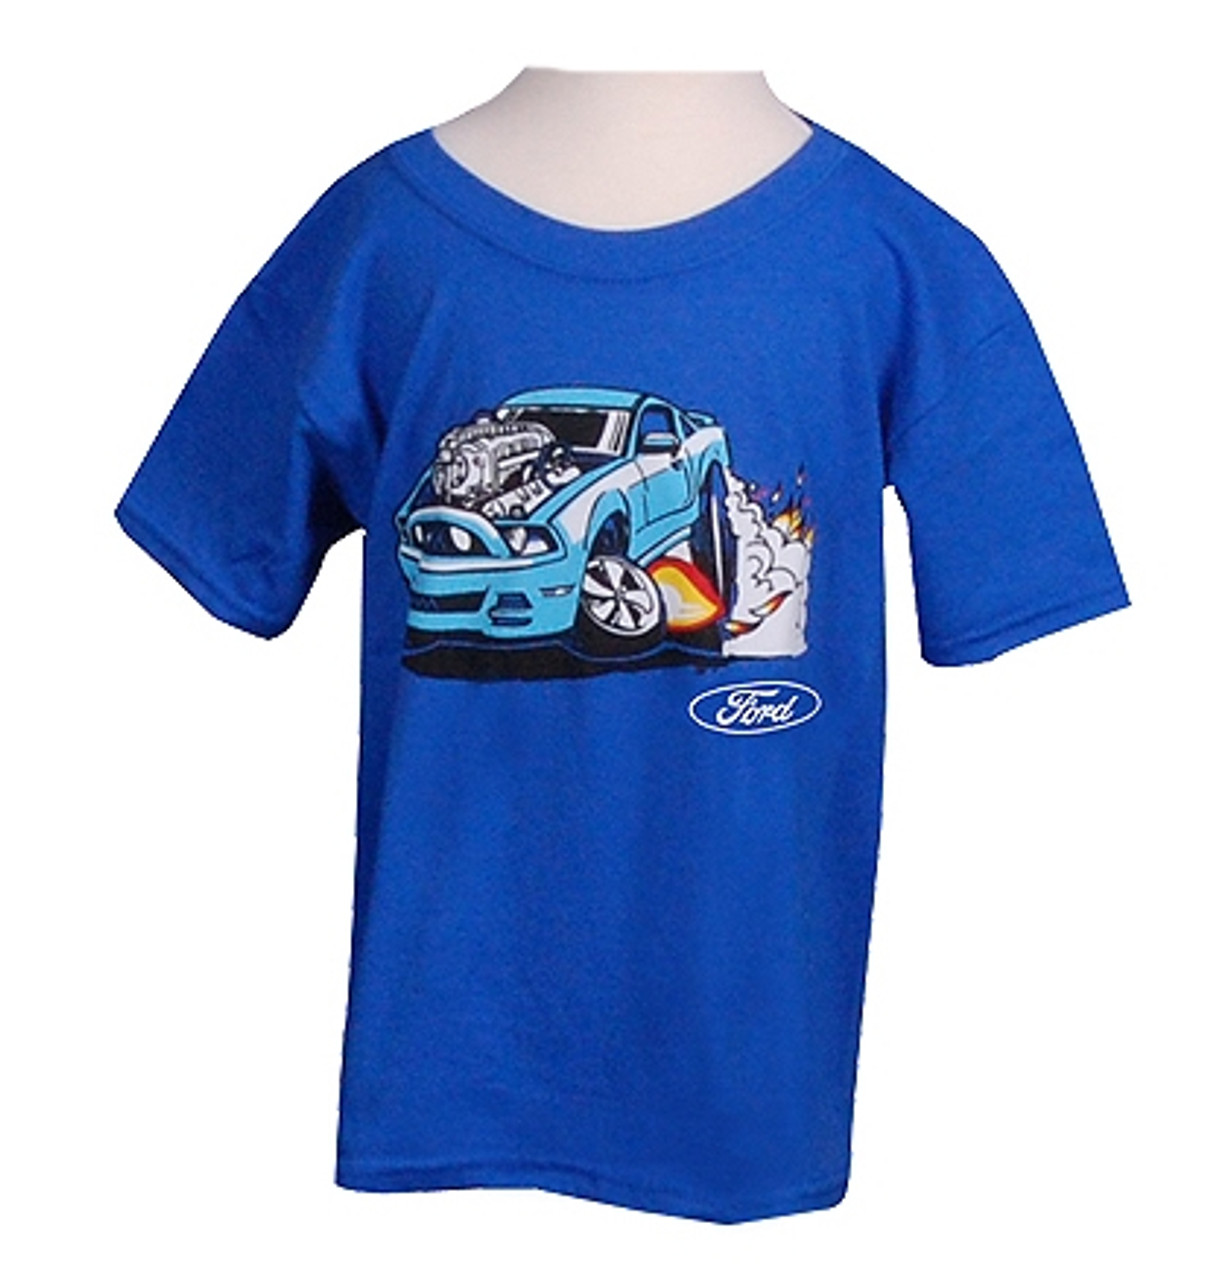 Ford Mustang Fastback Muscle Printed Toddler Tee T Shirt 2T 3T 4T Free Shipping